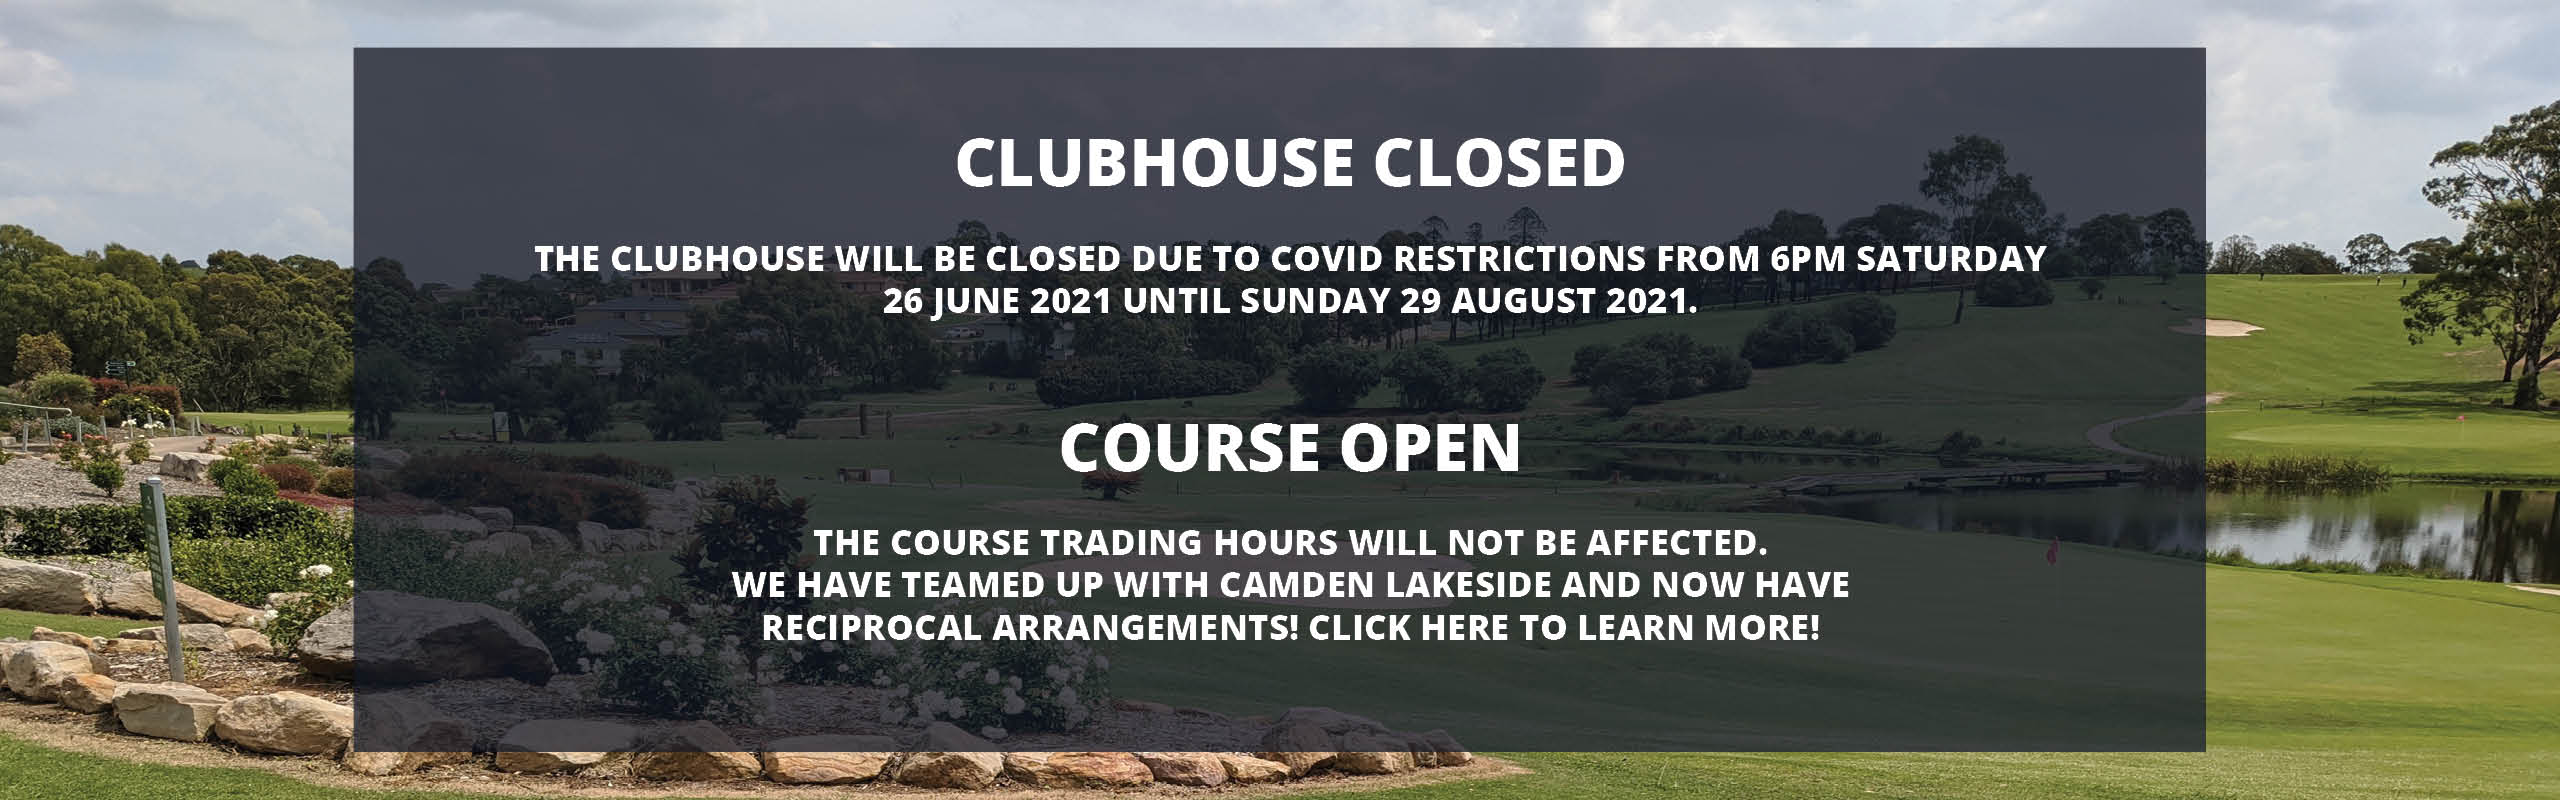 Clubhouse closed course open recipical deal home banner